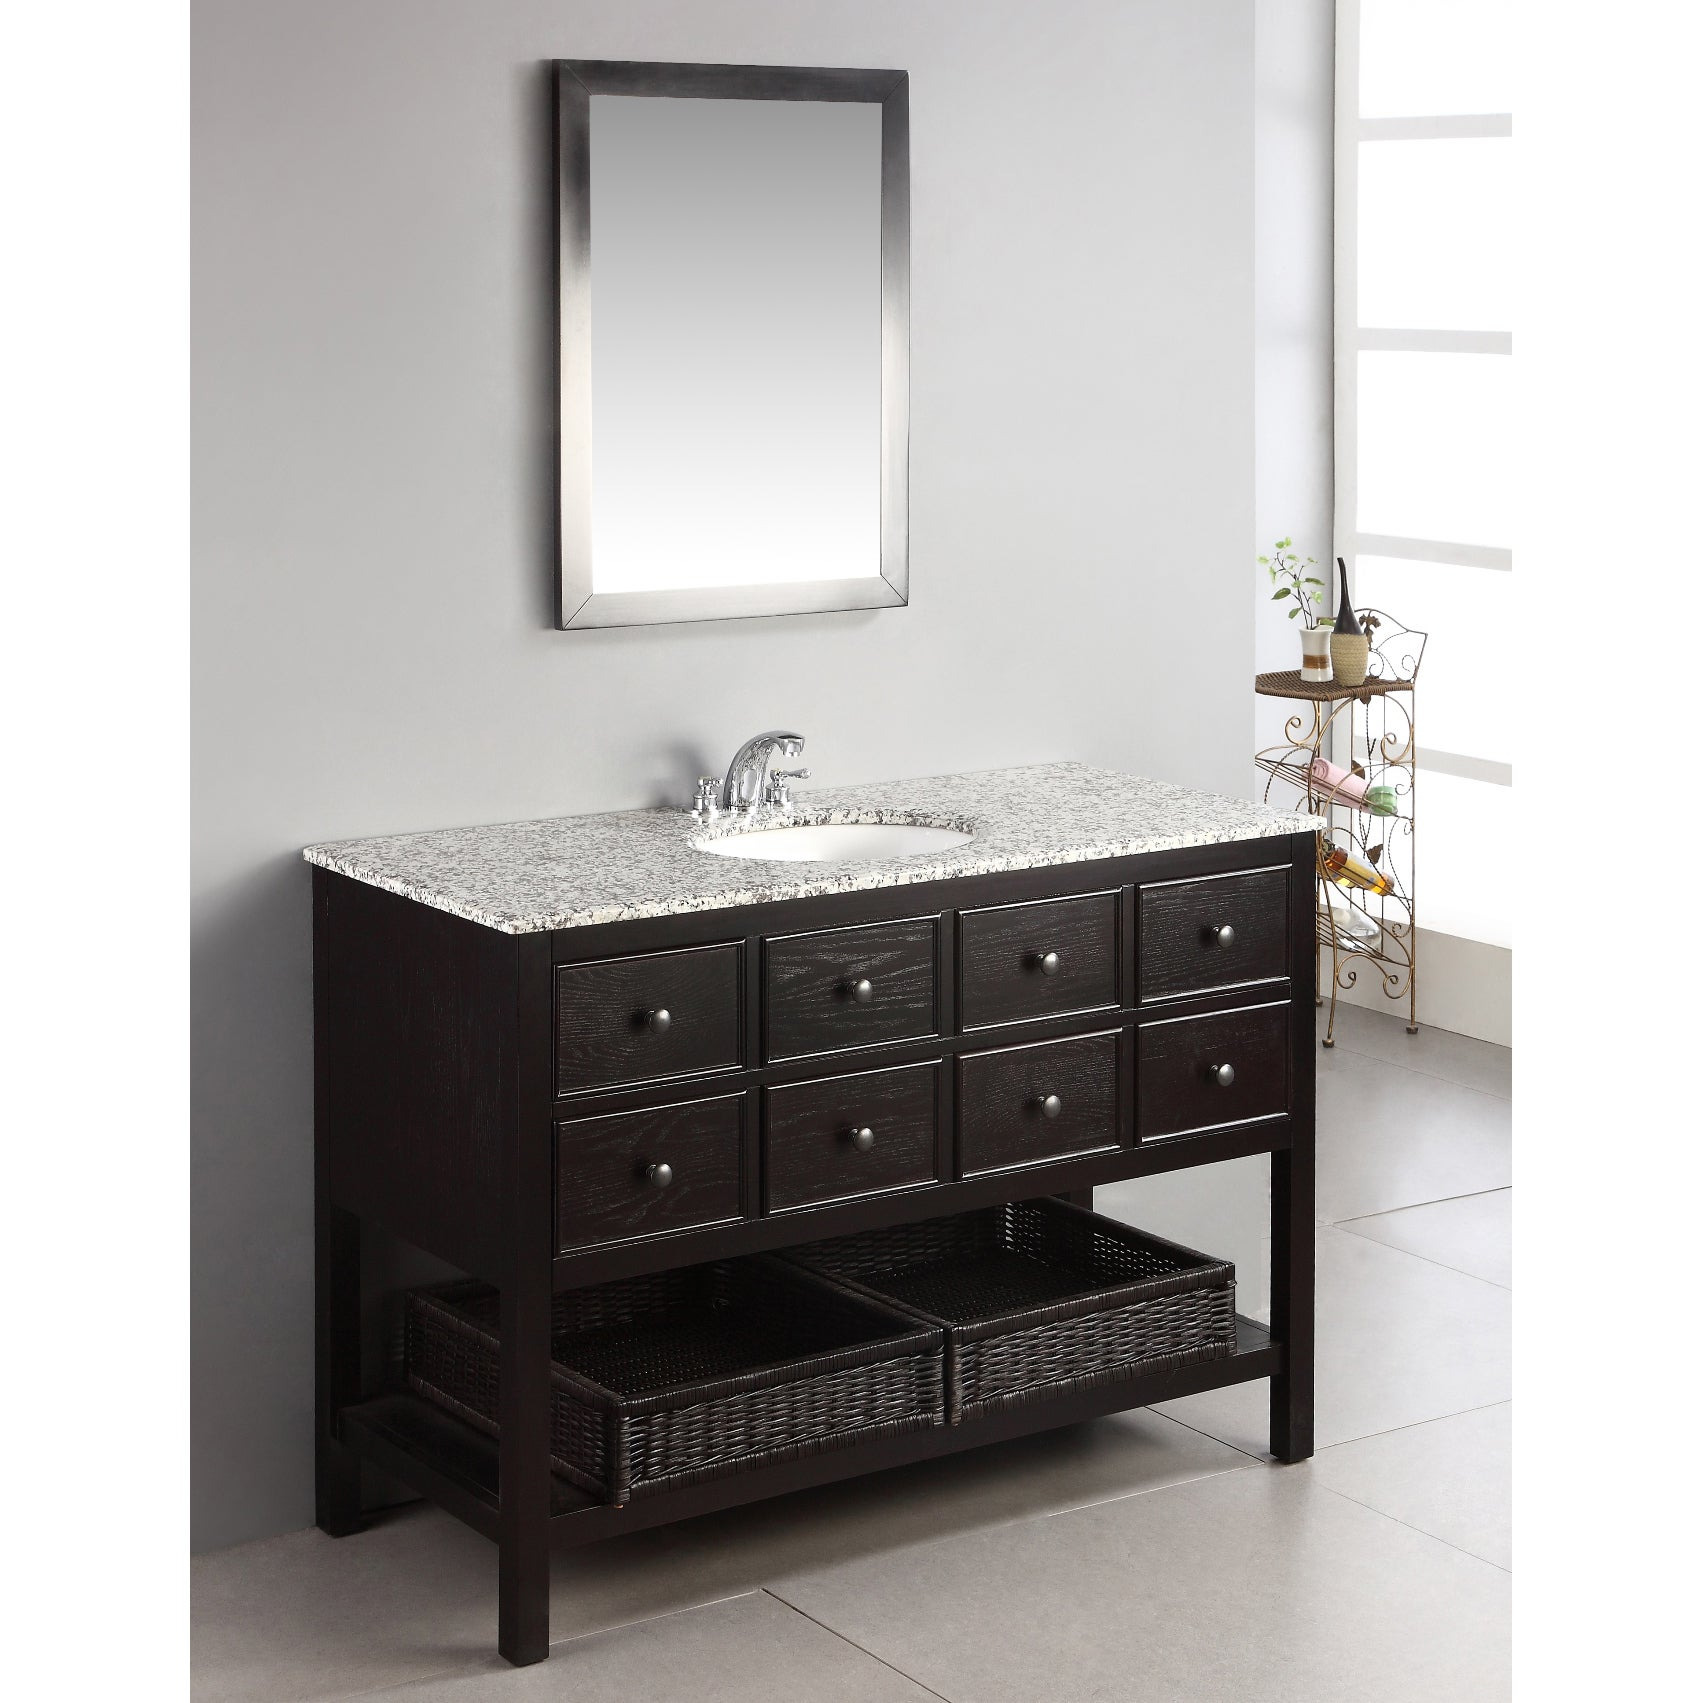 Wyndenhall New Haven Espresso Brown 48 Inch Bath Vanity With 2 Drawers And Dled Grey Granite Top Free Shipping Today 6771714